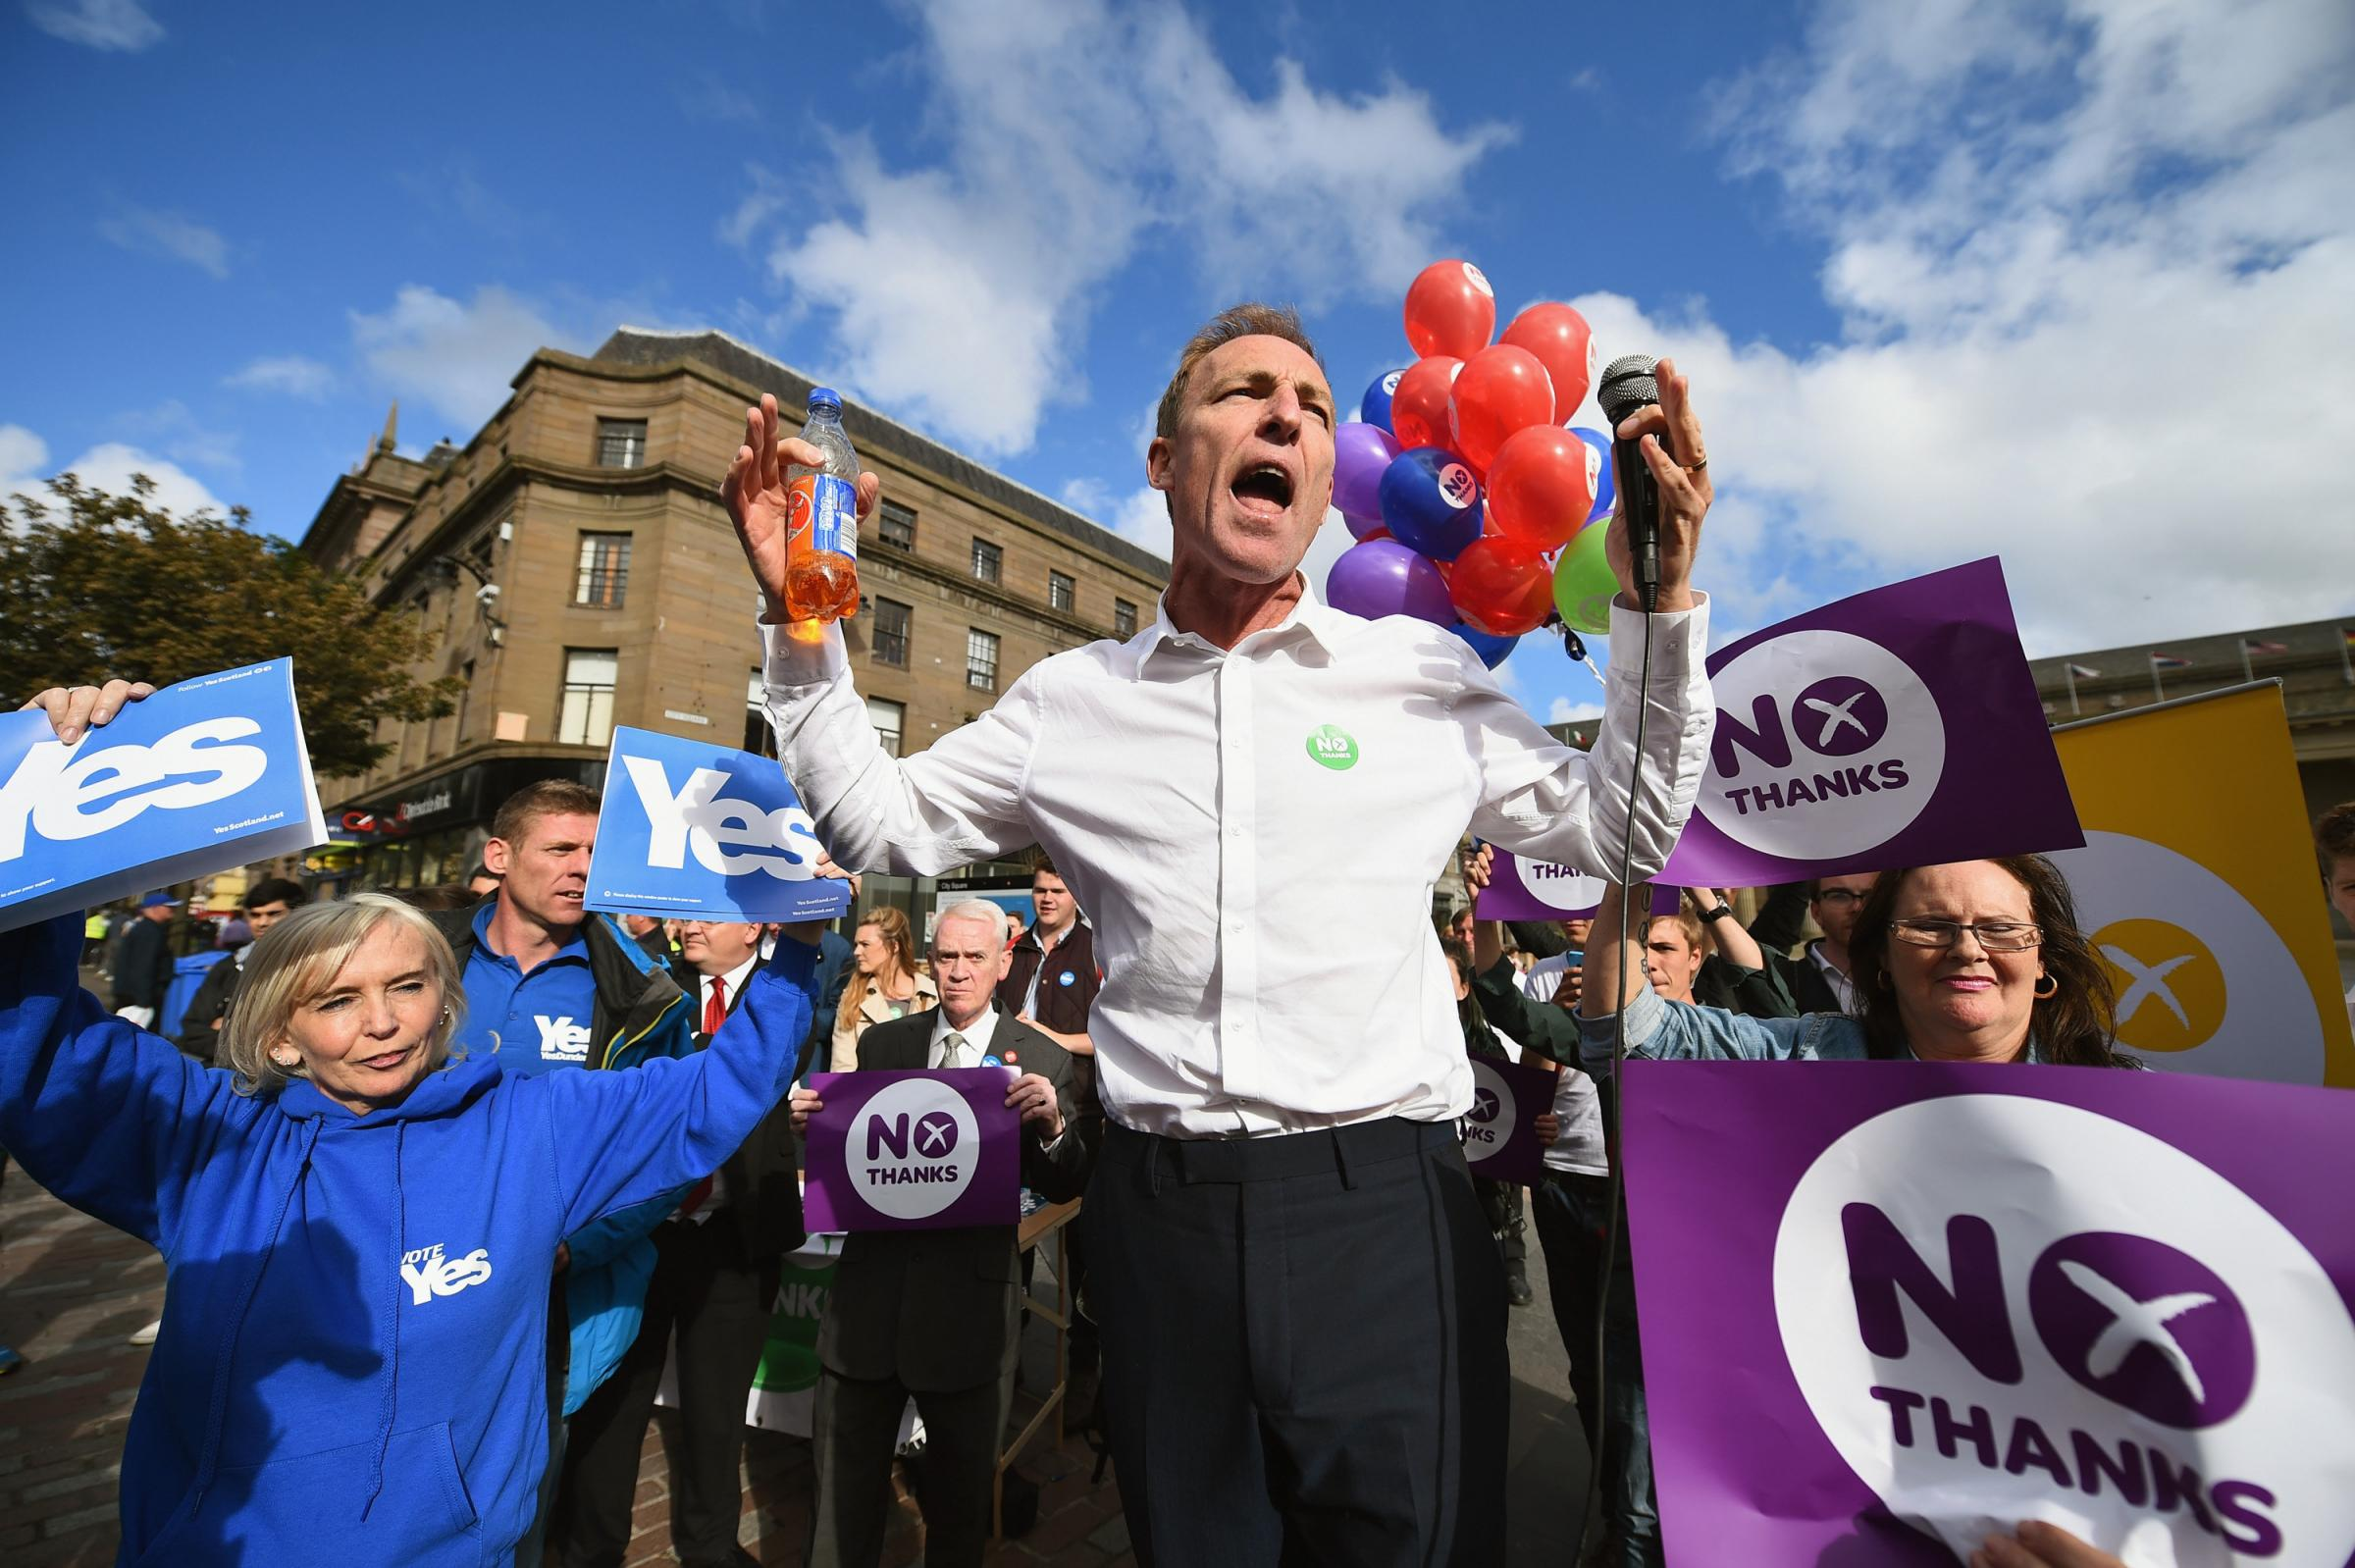 Extract: The funniest moments of the indyref campaign